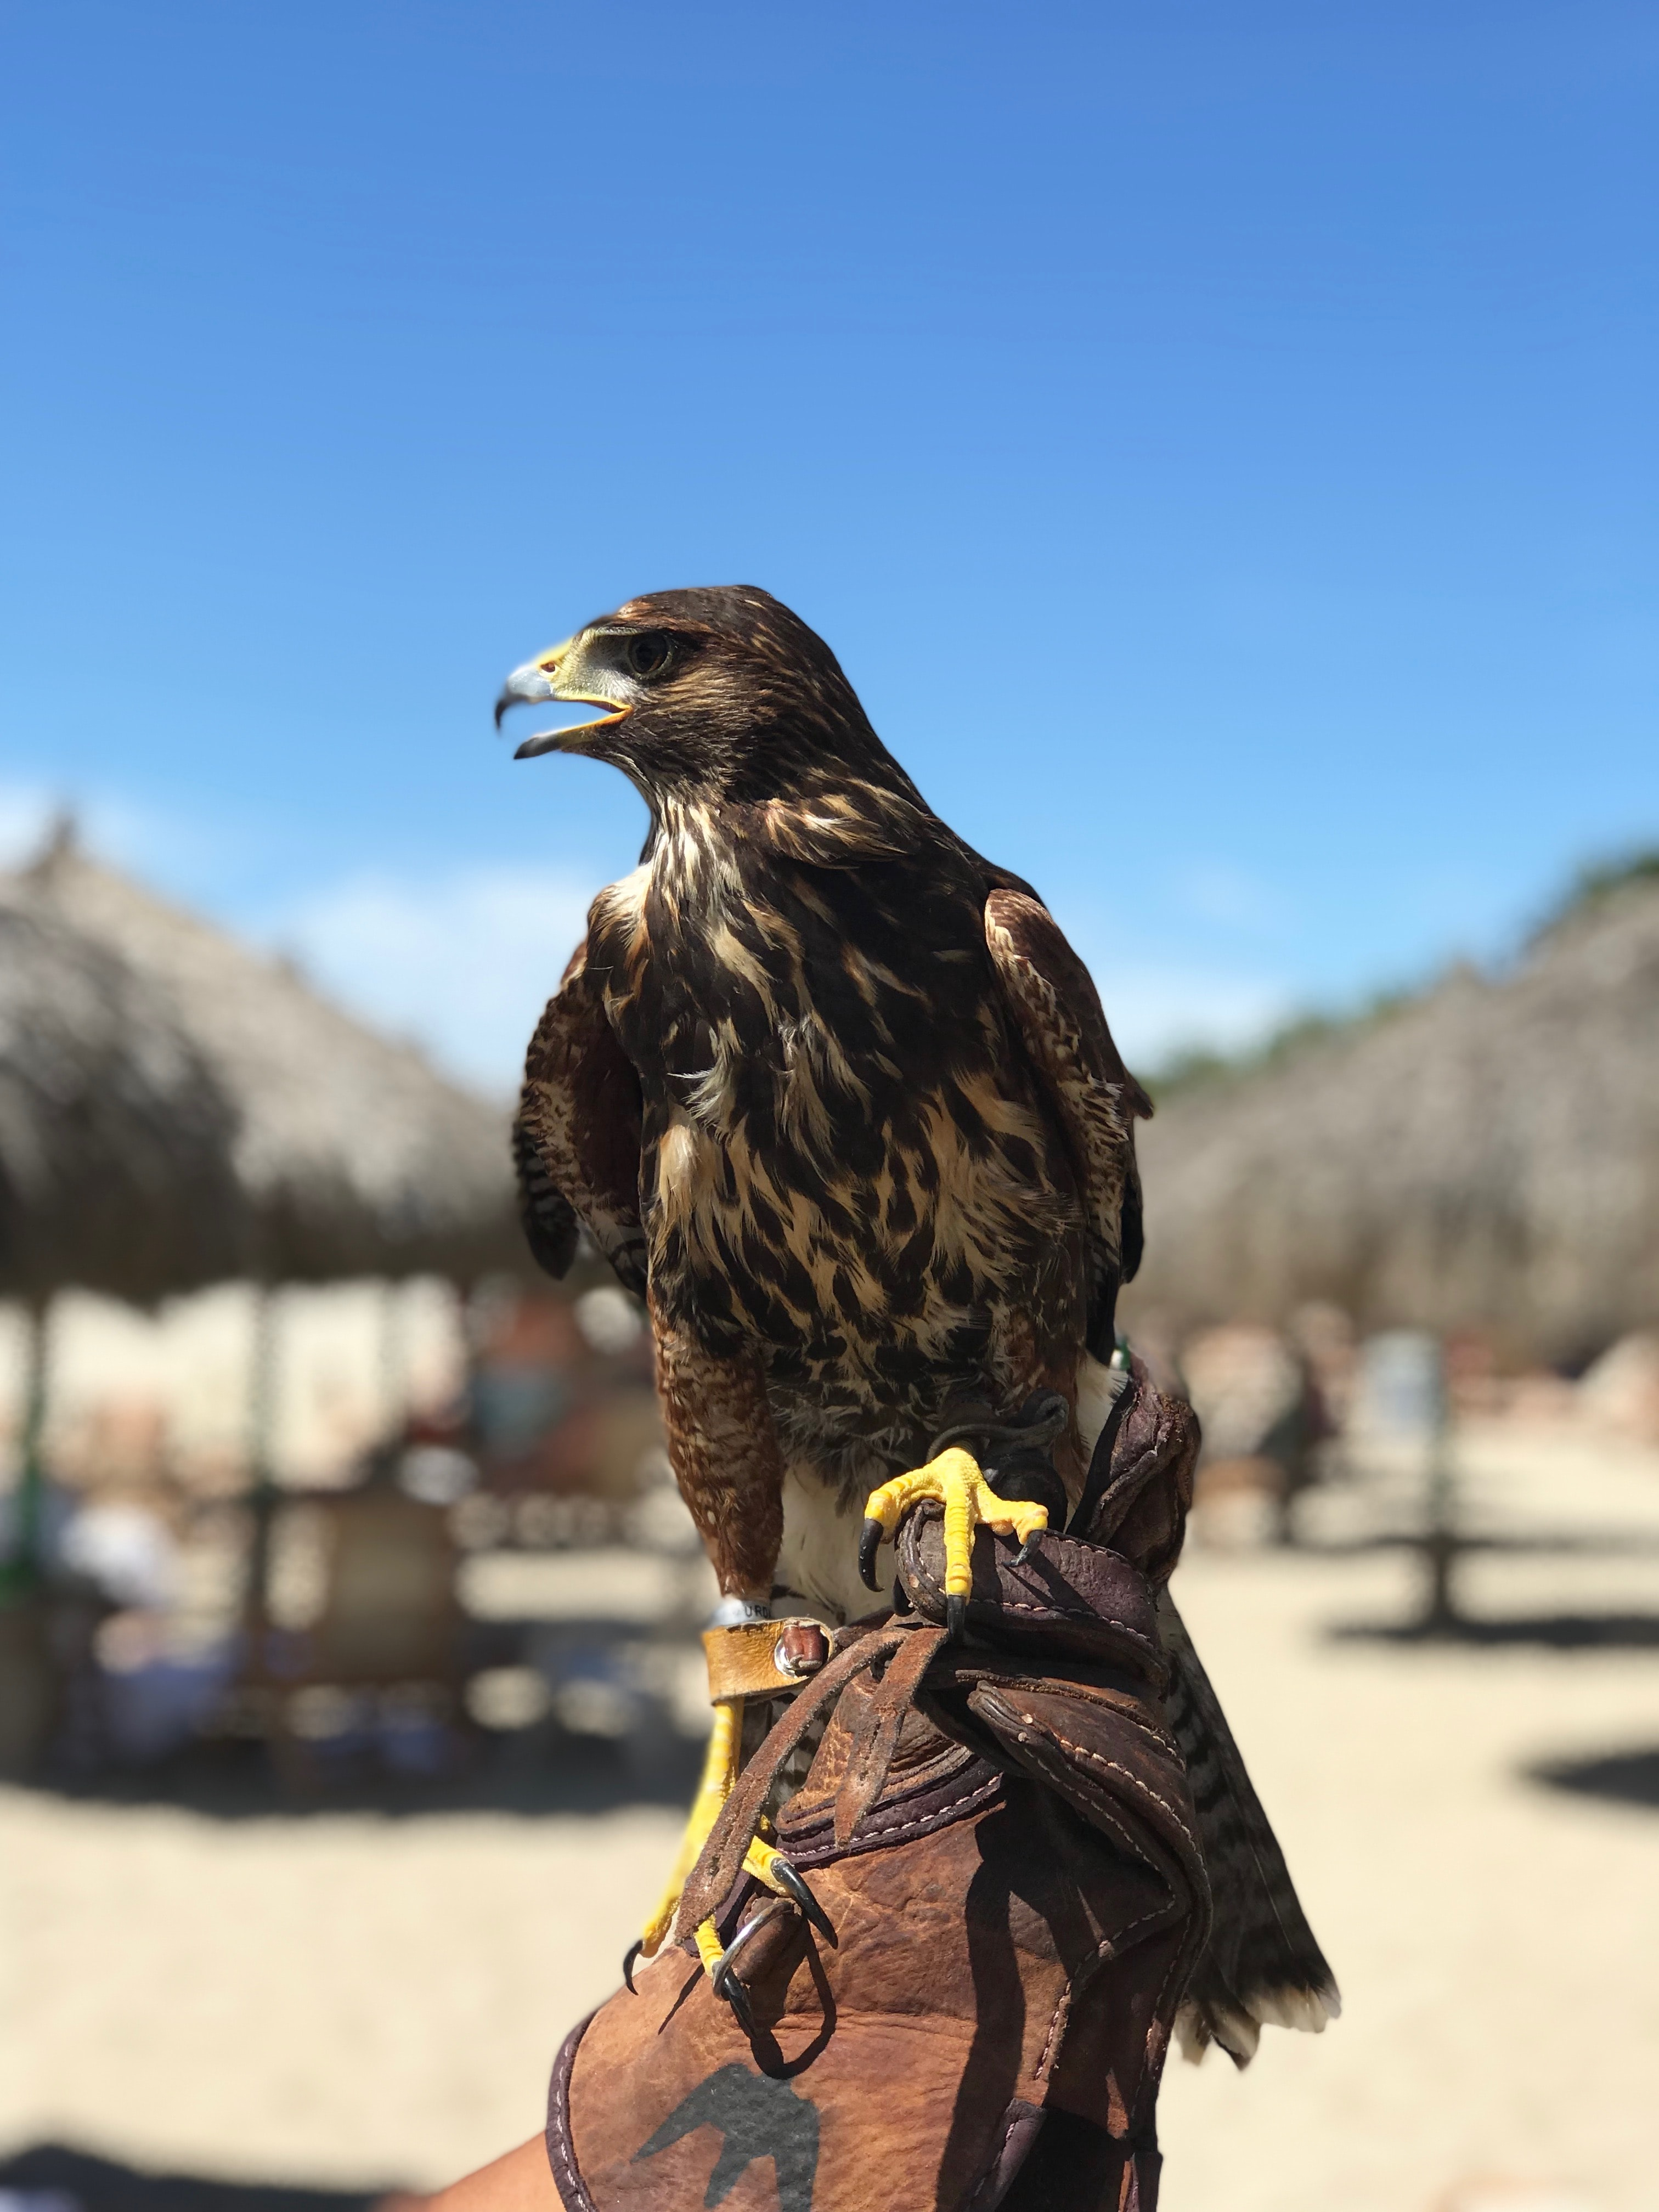 black and brown hawk perching on person's hand wearing brown leather gloves